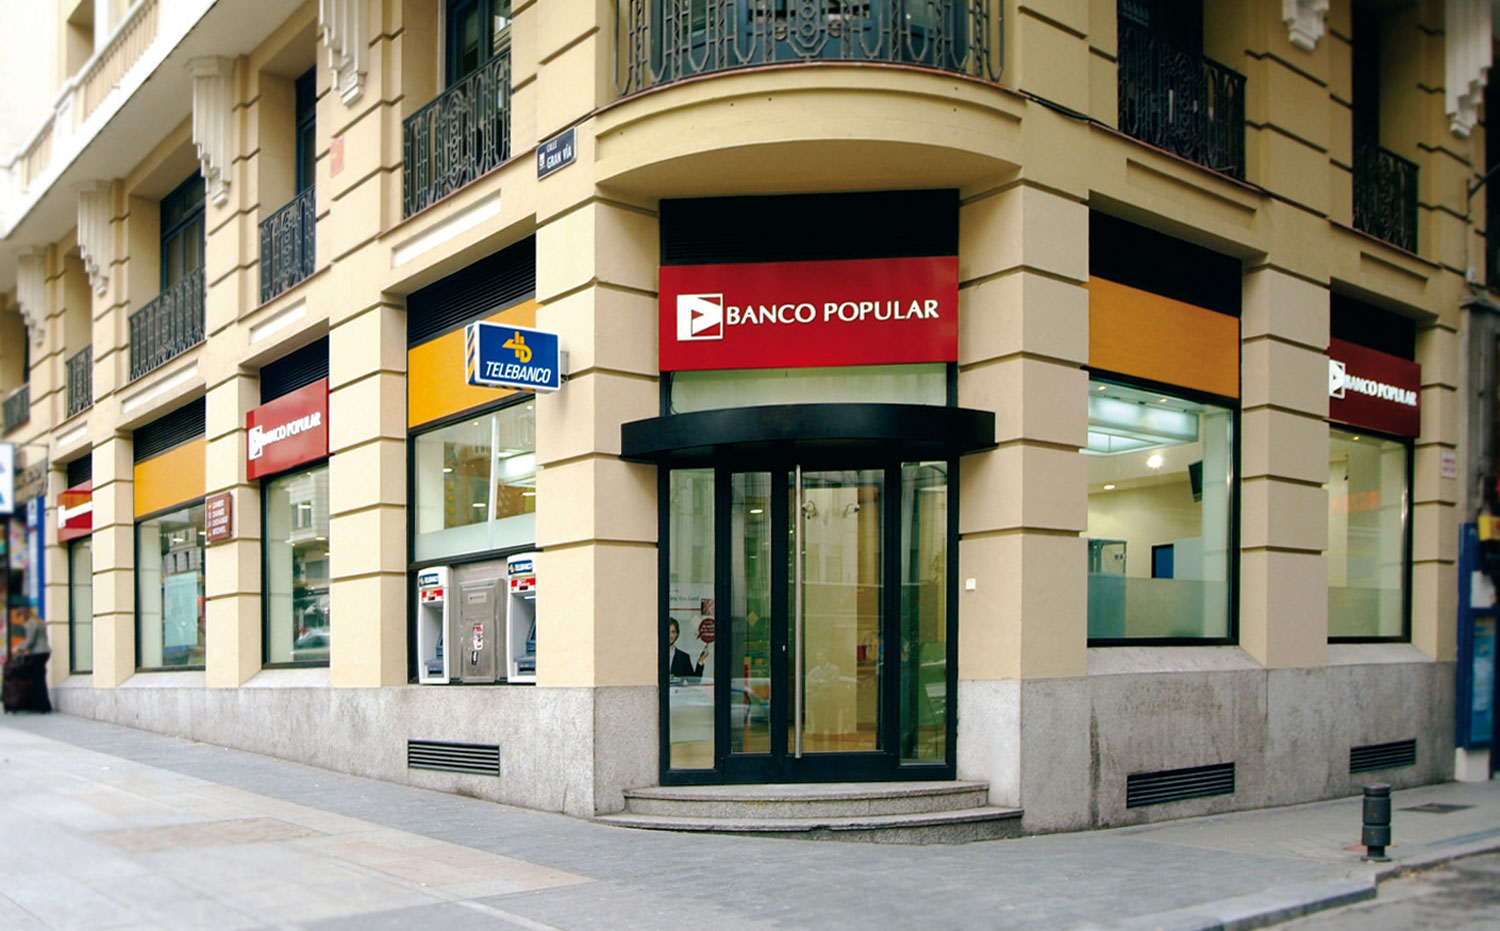 Concepto y dise o interior banco popular volteo for Oficinas banco popular madrid